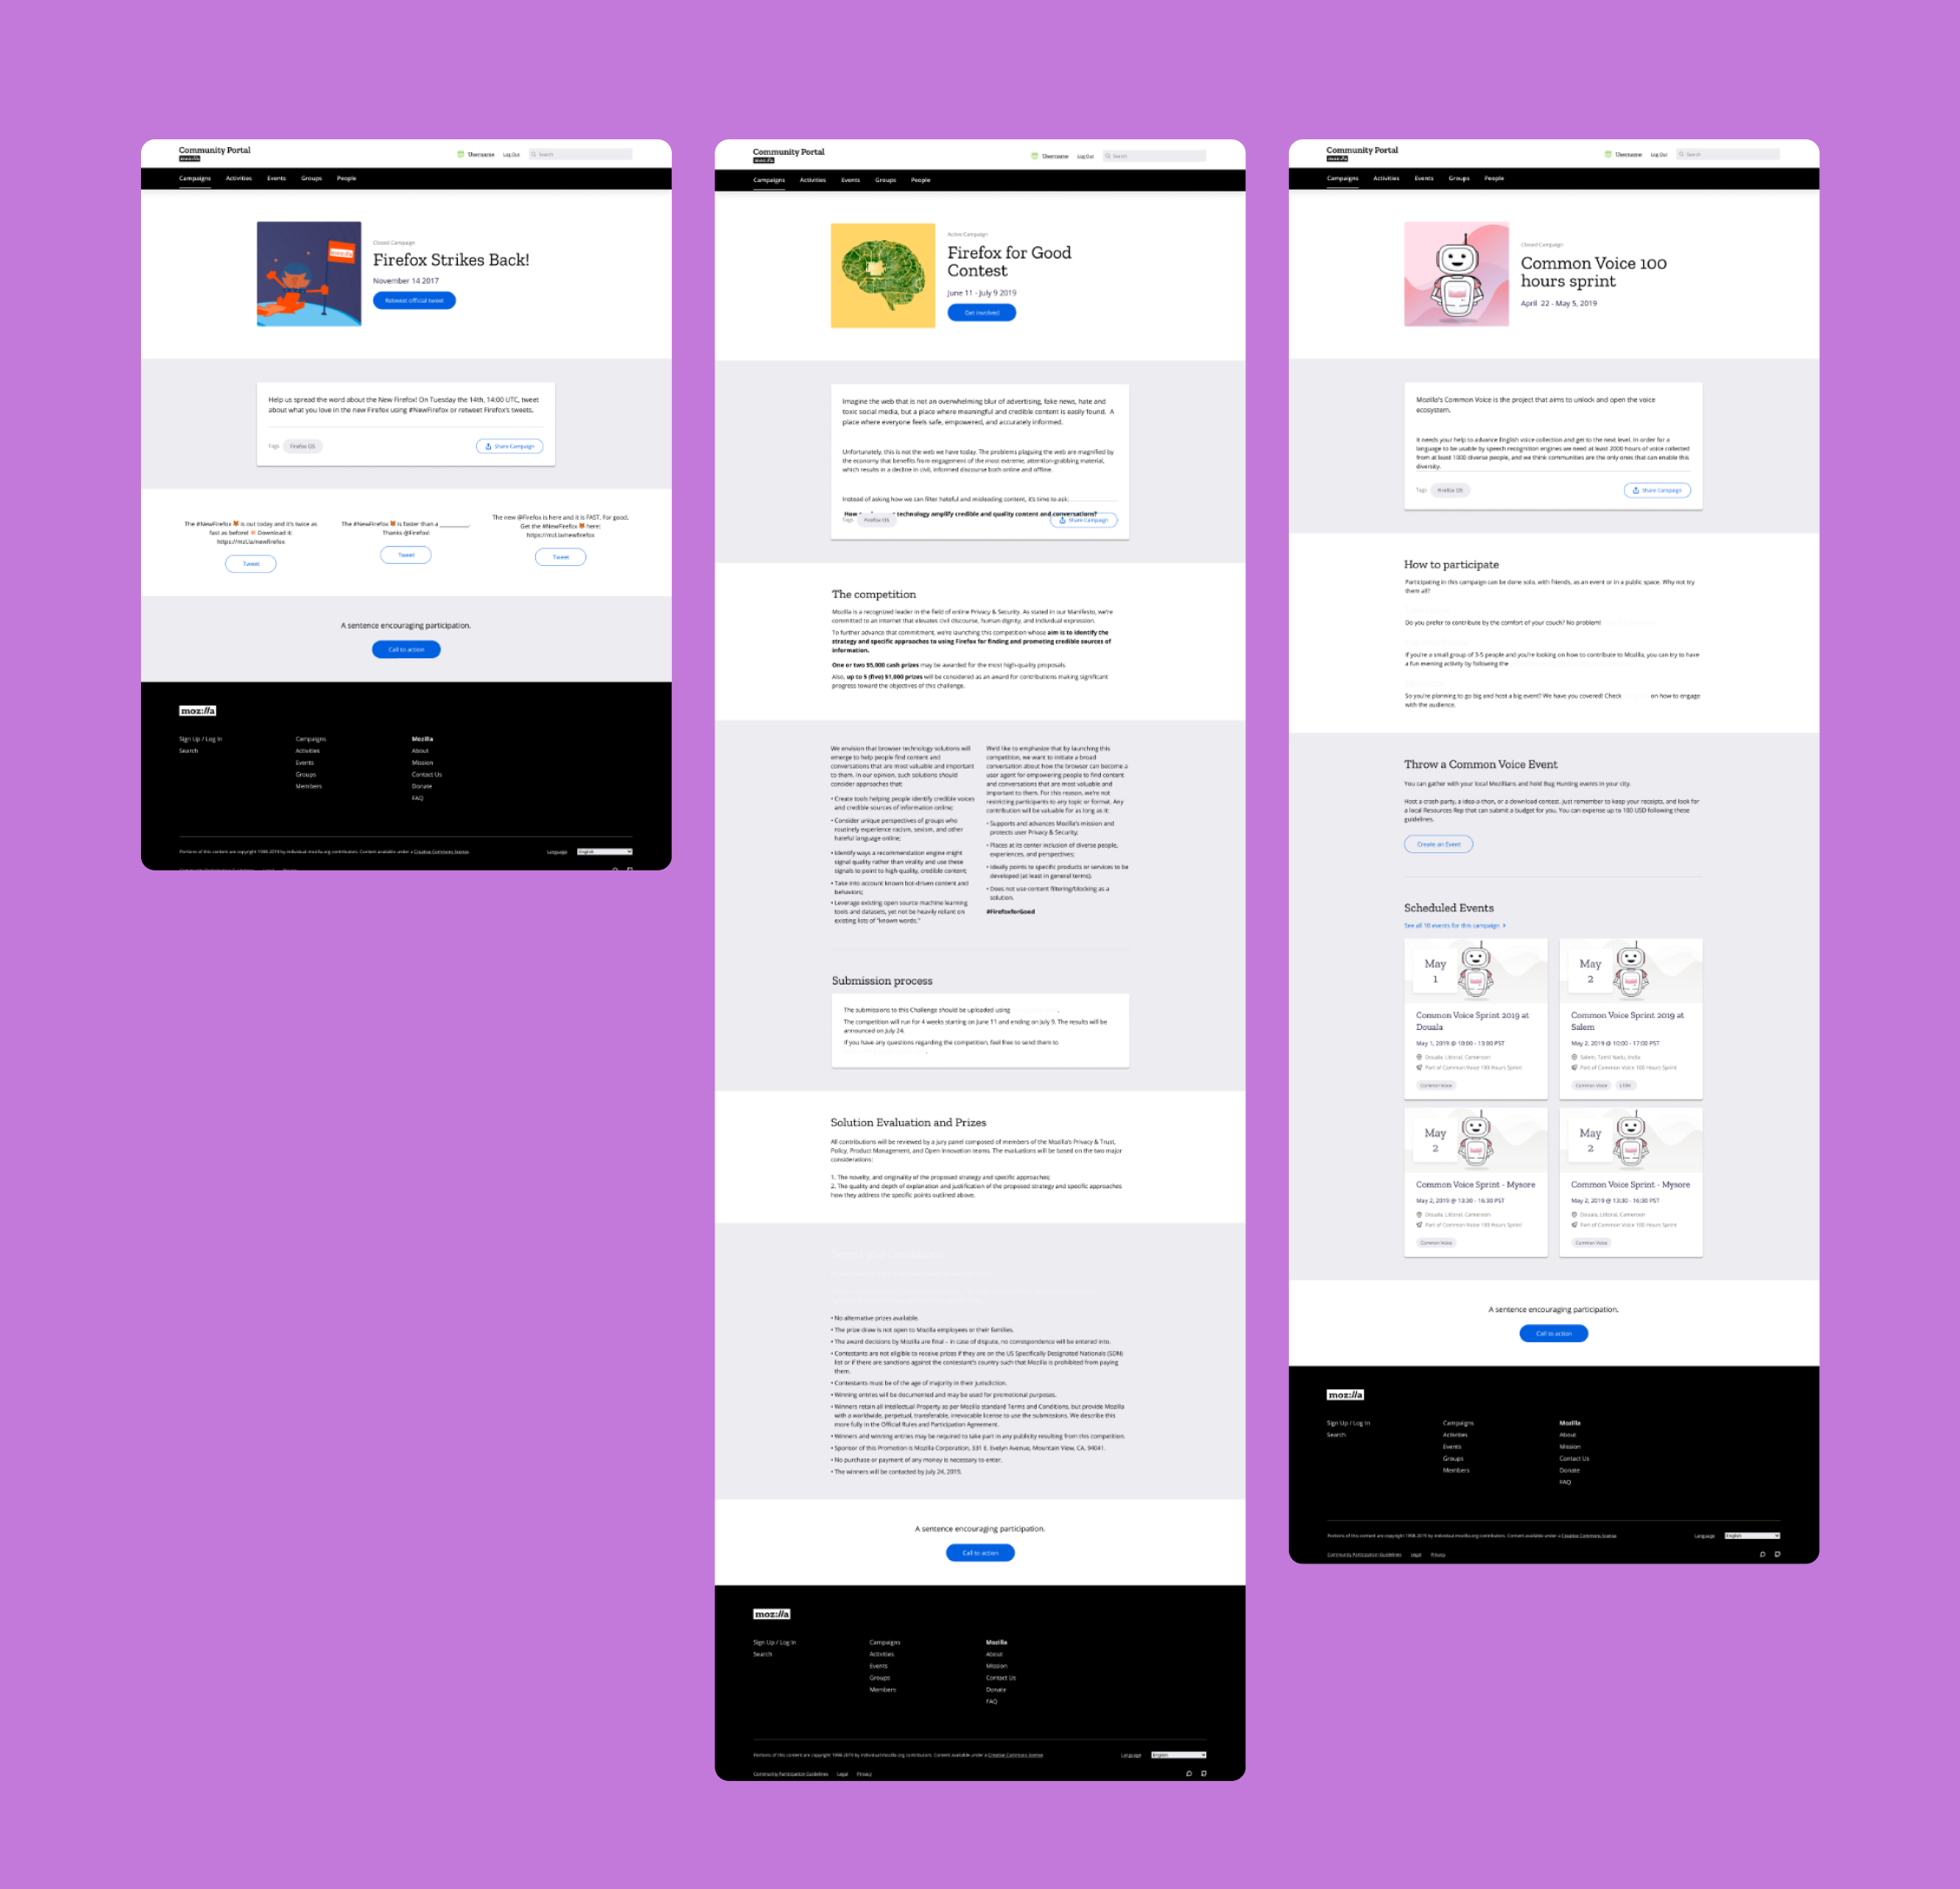 3 different campaign pages created with the page builder